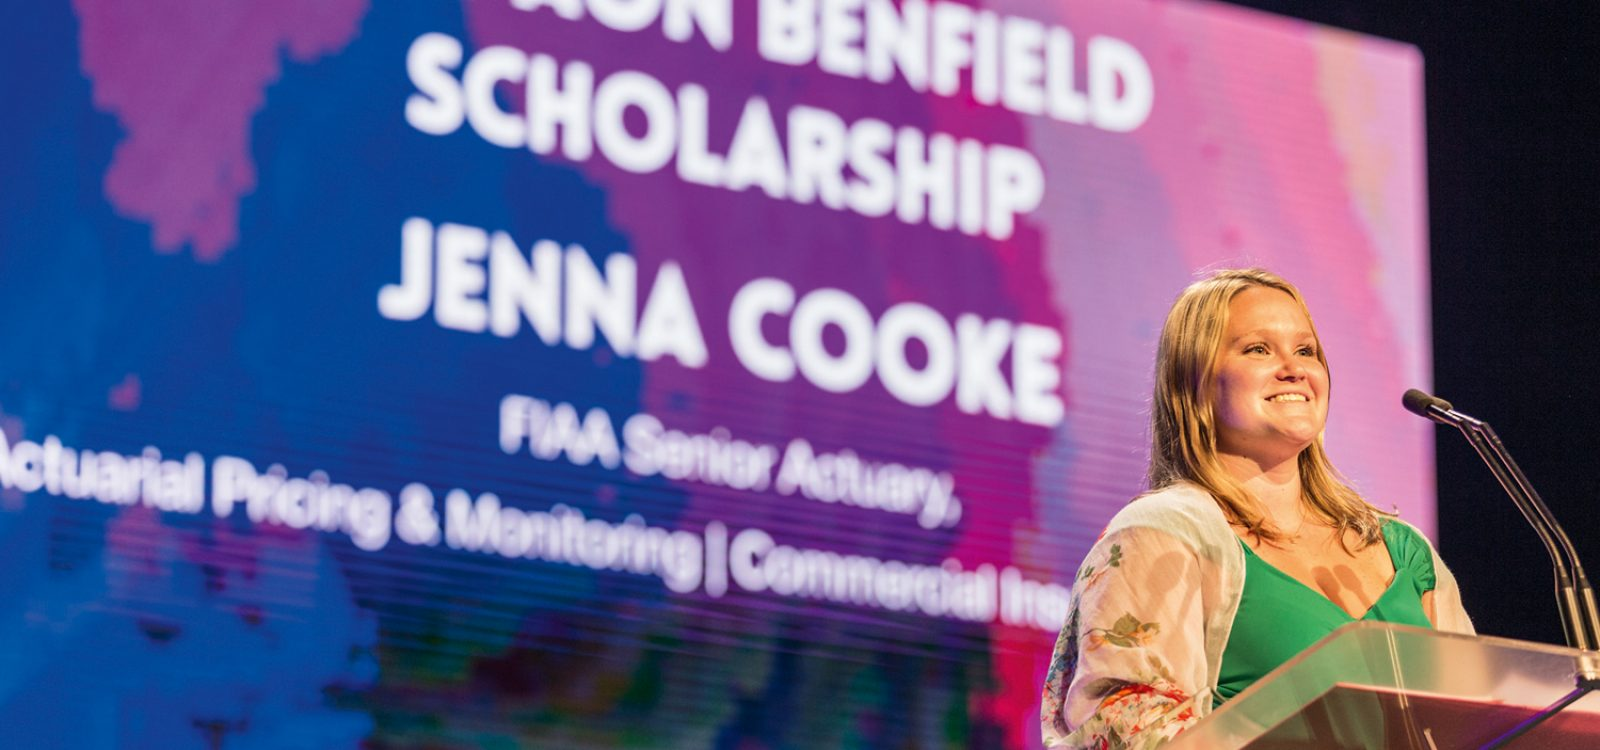 Jenna Cooke – 2014 Aon Benfield Scholarship Winner